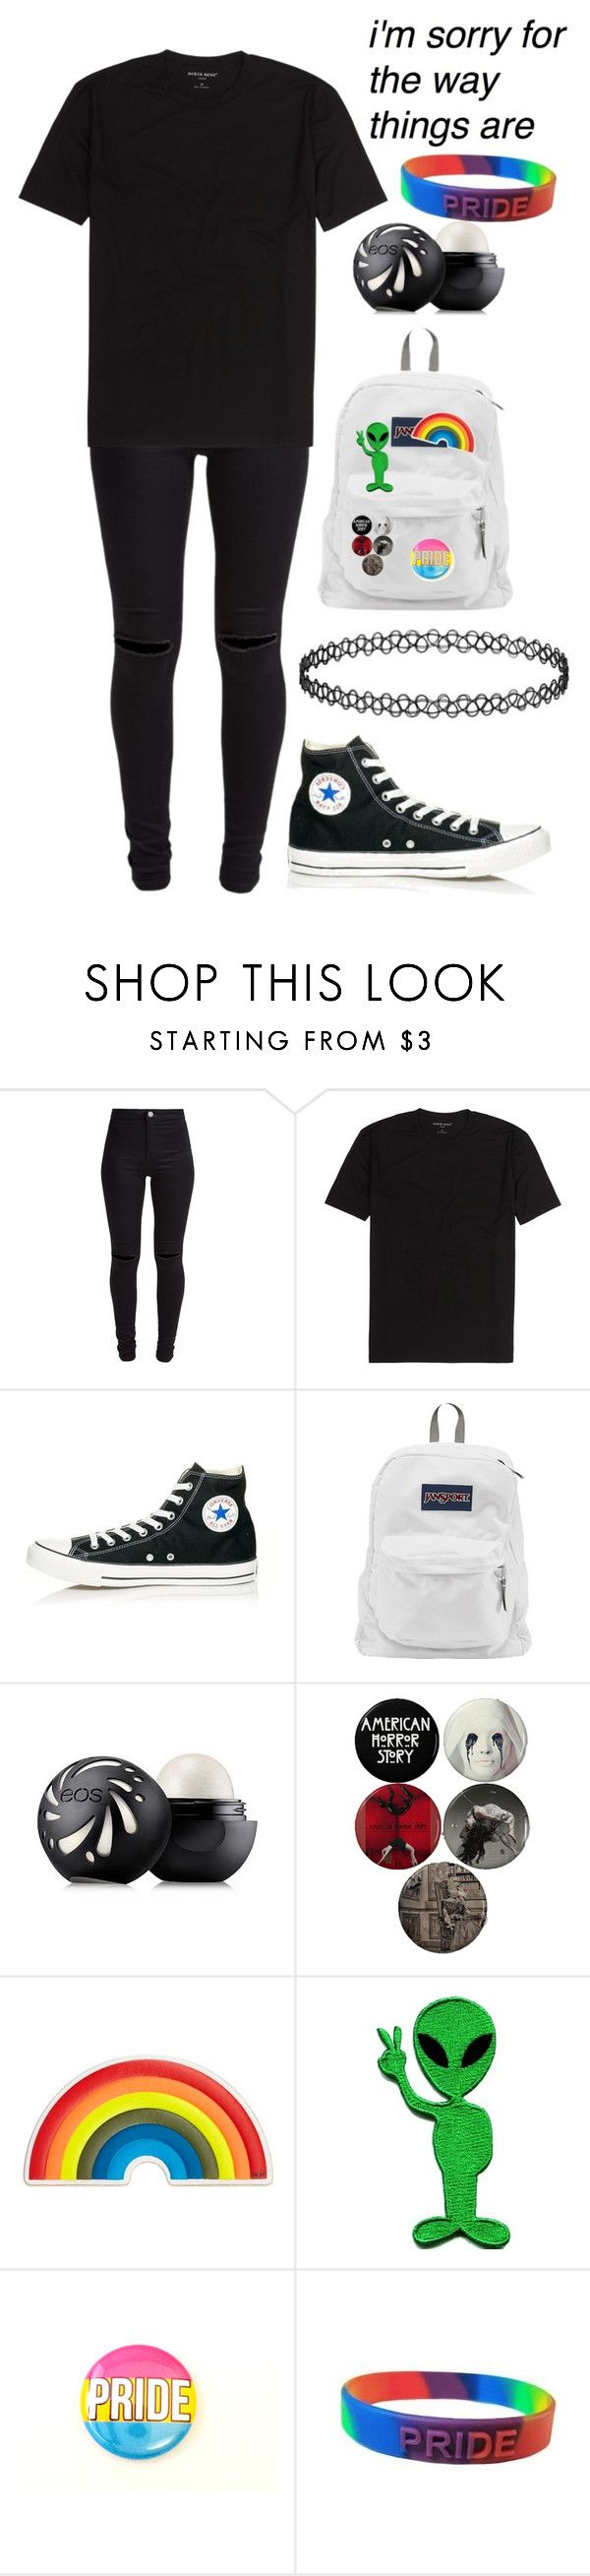 """""""I'm sorry for the way things are"""" by xxghostlygracexx ❤ liked on Polyvore featuring New Look, Converse, JanSport, Eos, Anya Hindmarch and Retrò"""